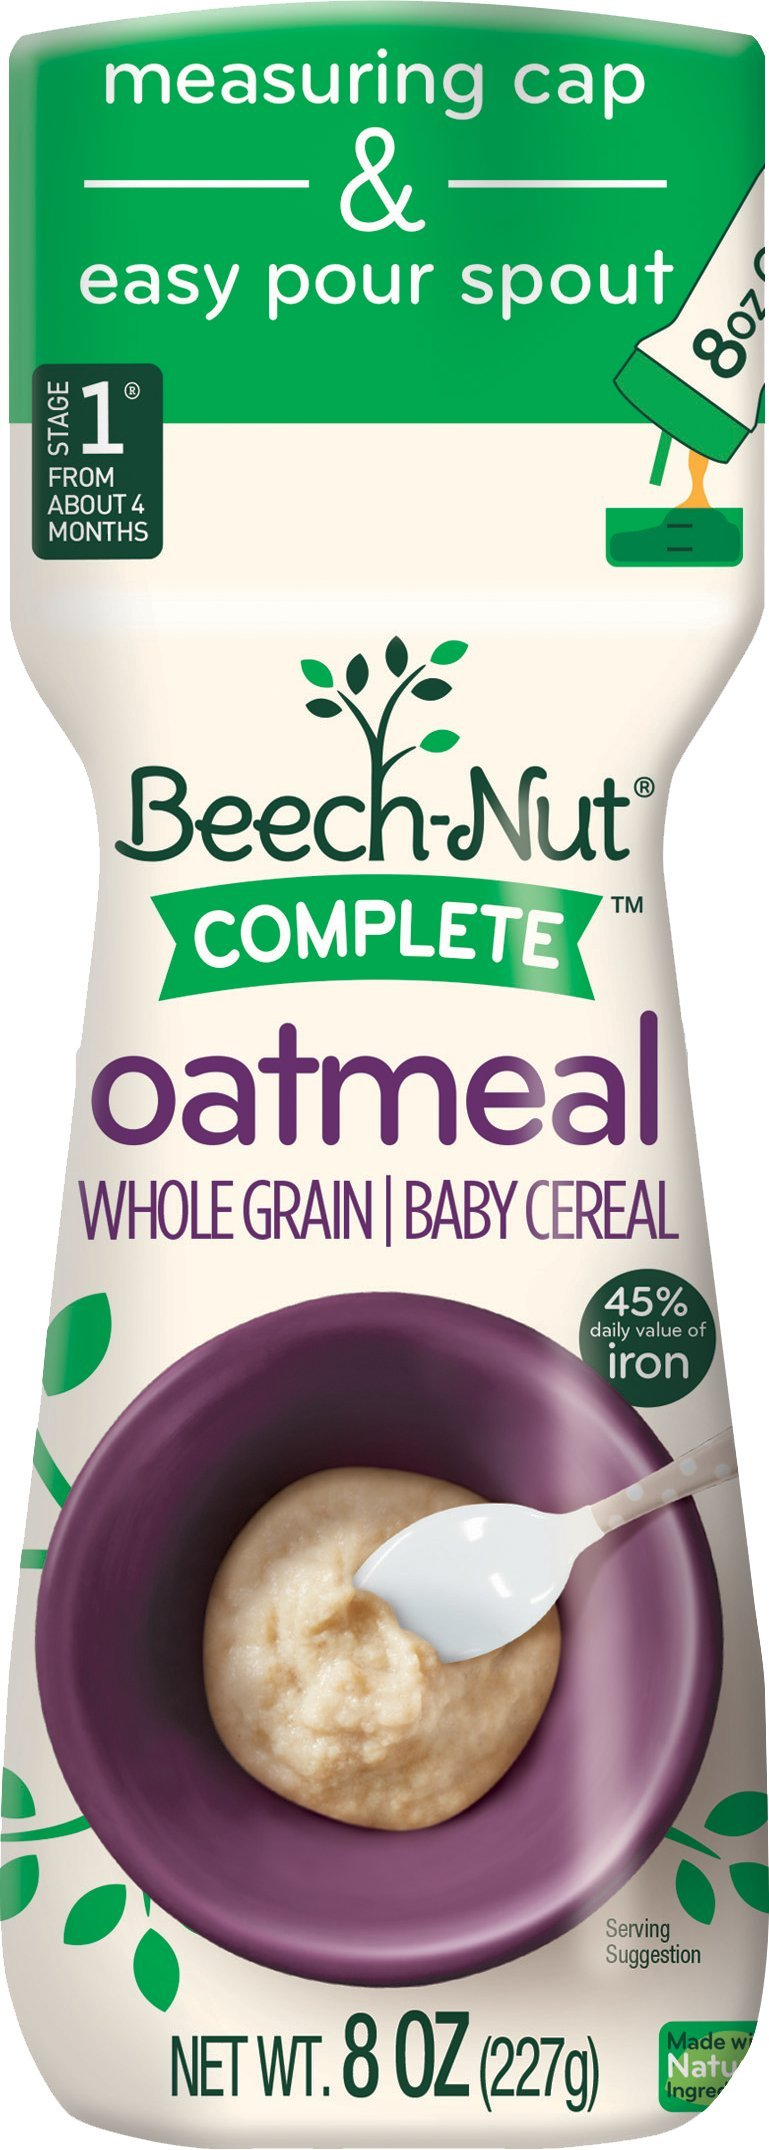 Beech-Nut Oatmeal 8 OZ Canister 3 pack